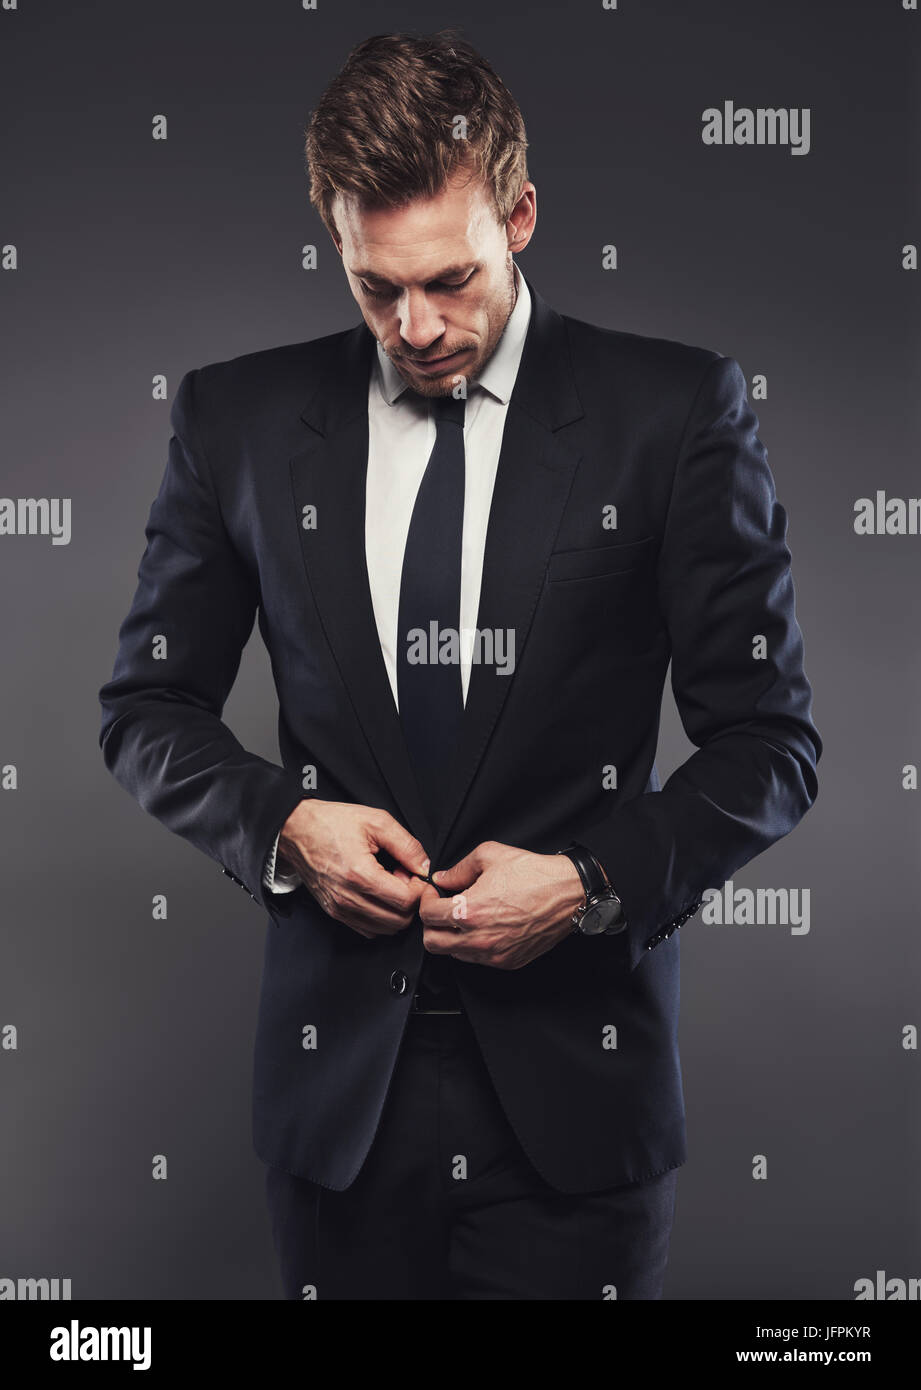 a370bd8f8c Handsome young businessman buttoning up the jacket of a stylish black suit  standing alone in a studio against a grey background